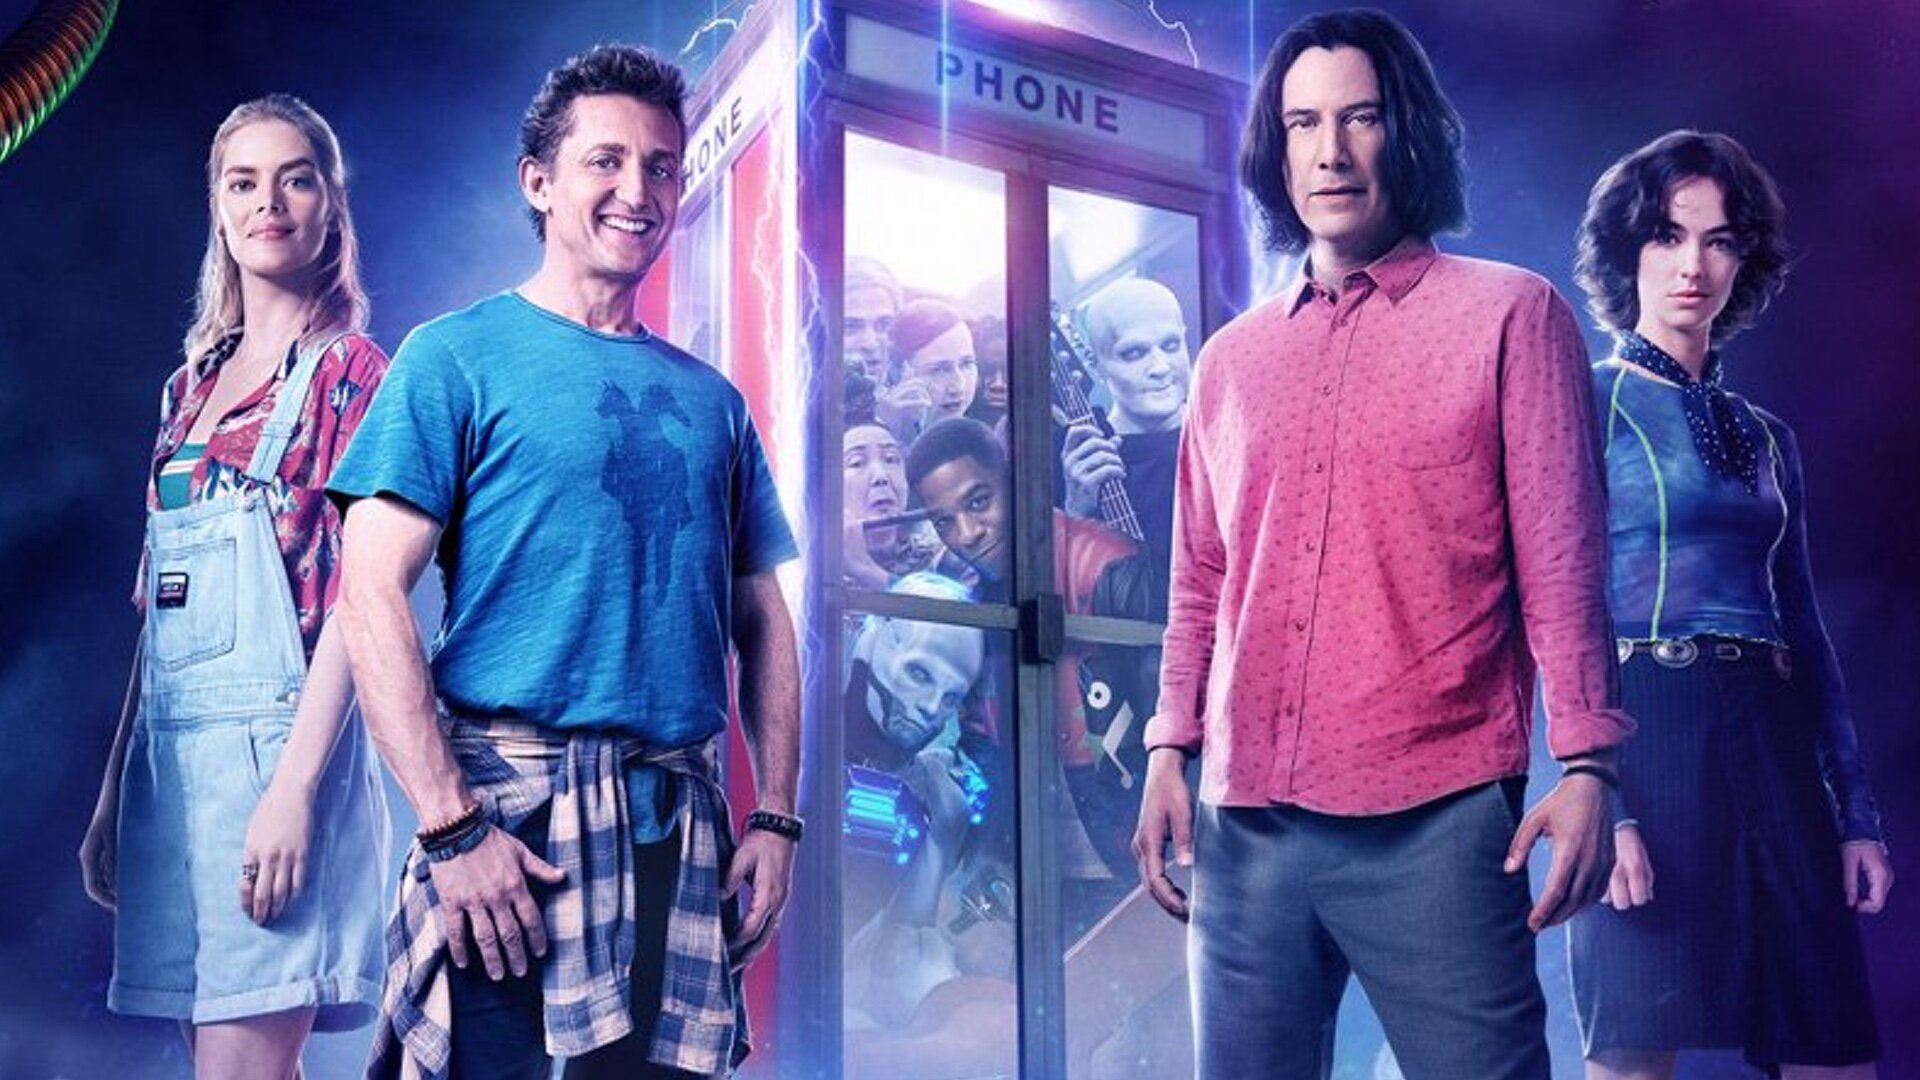 Awesome New Trailer for BILL & TED FACE THE MUSIC With New Theatrical and VOD Release Date